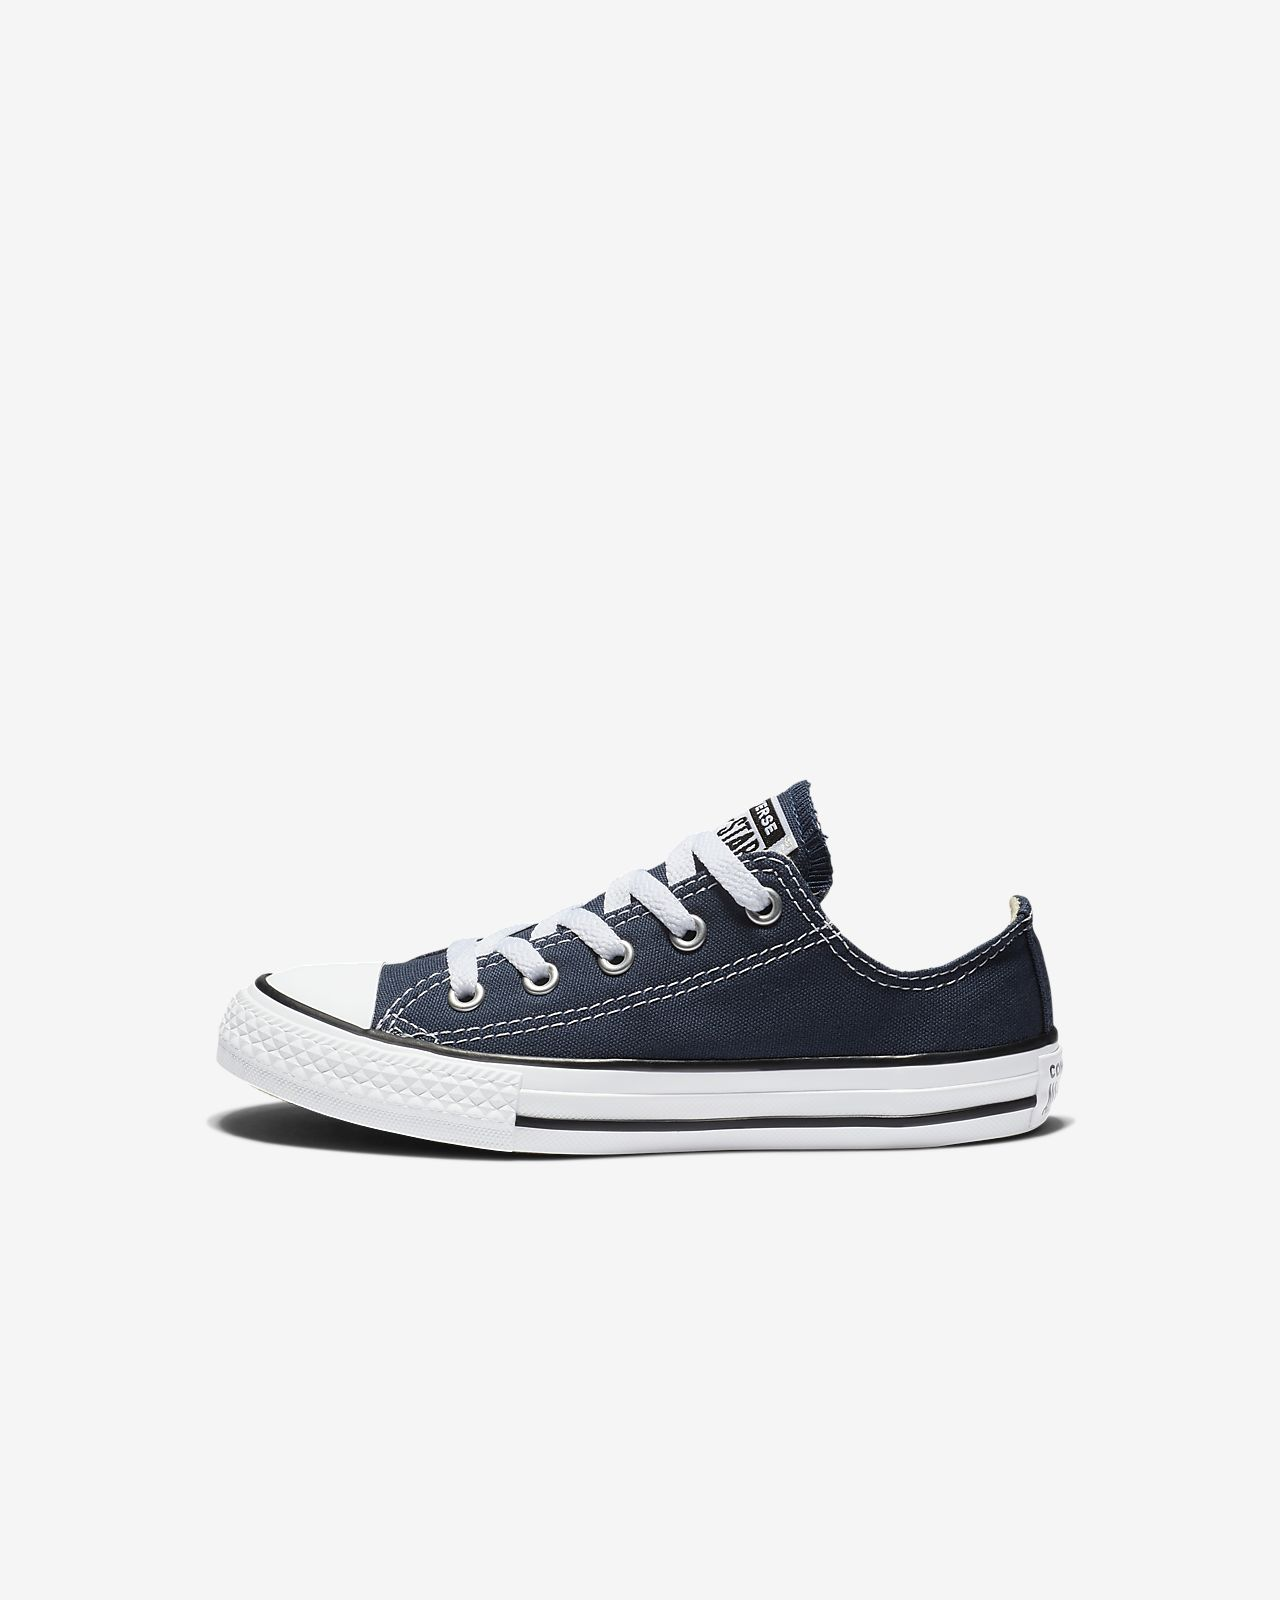 1816d89b0 Converse Chuck Taylor All Star Low Top (10.5c-3y) Little Kids' Shoe